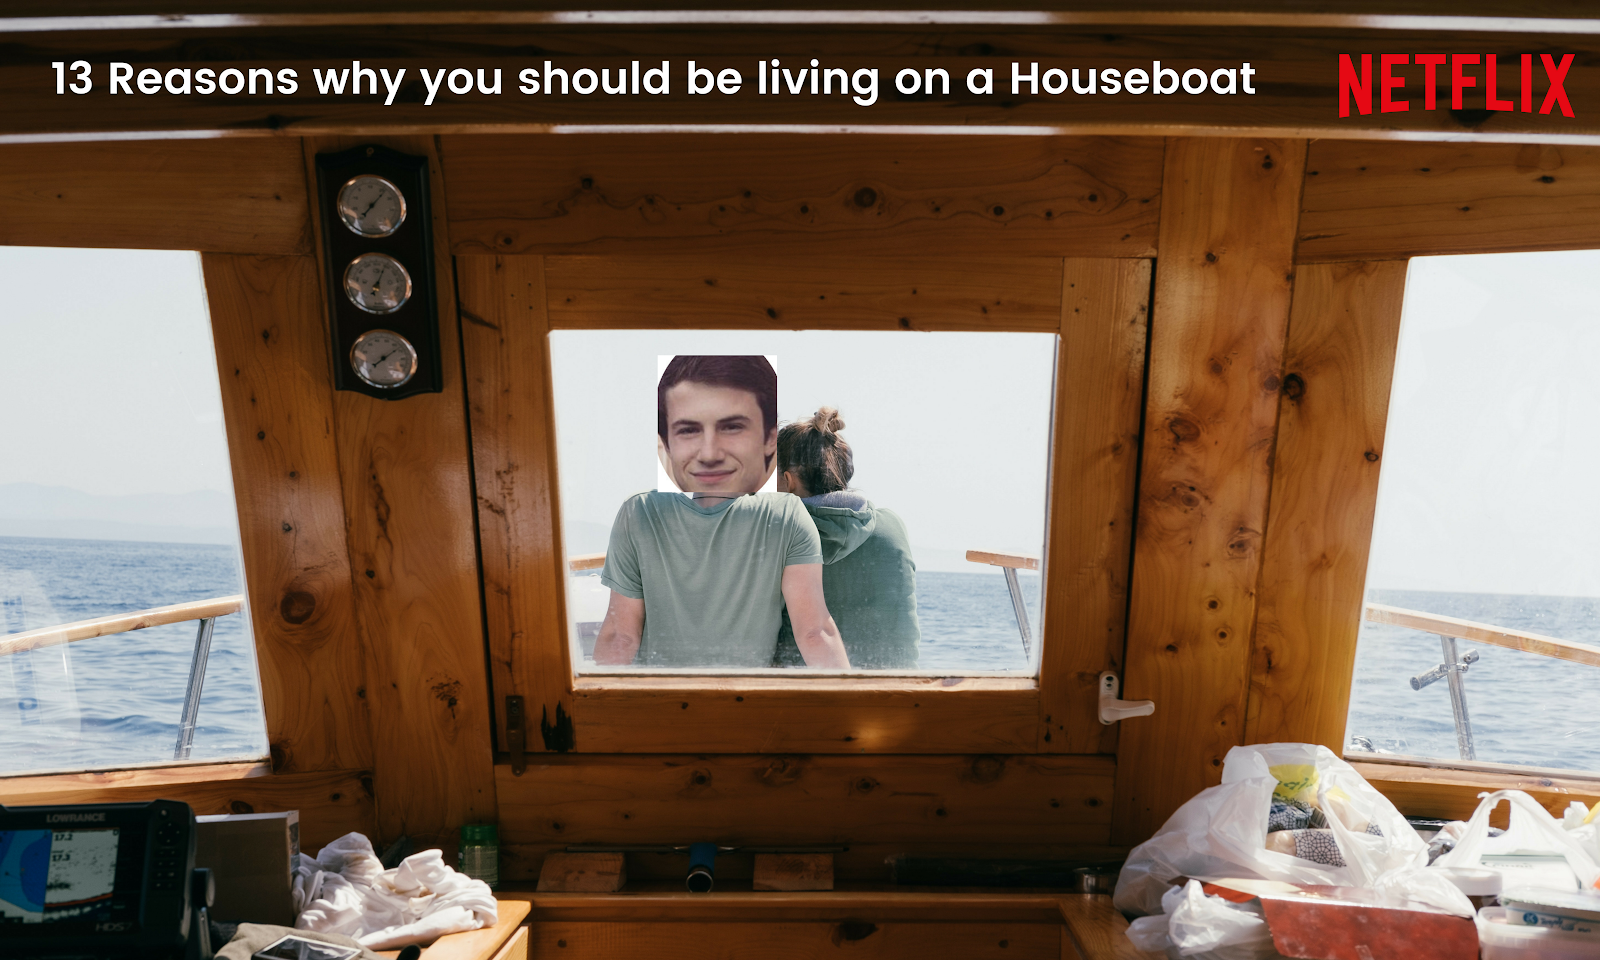 13 Reasons Why You Should Be Living on a Houseboat!